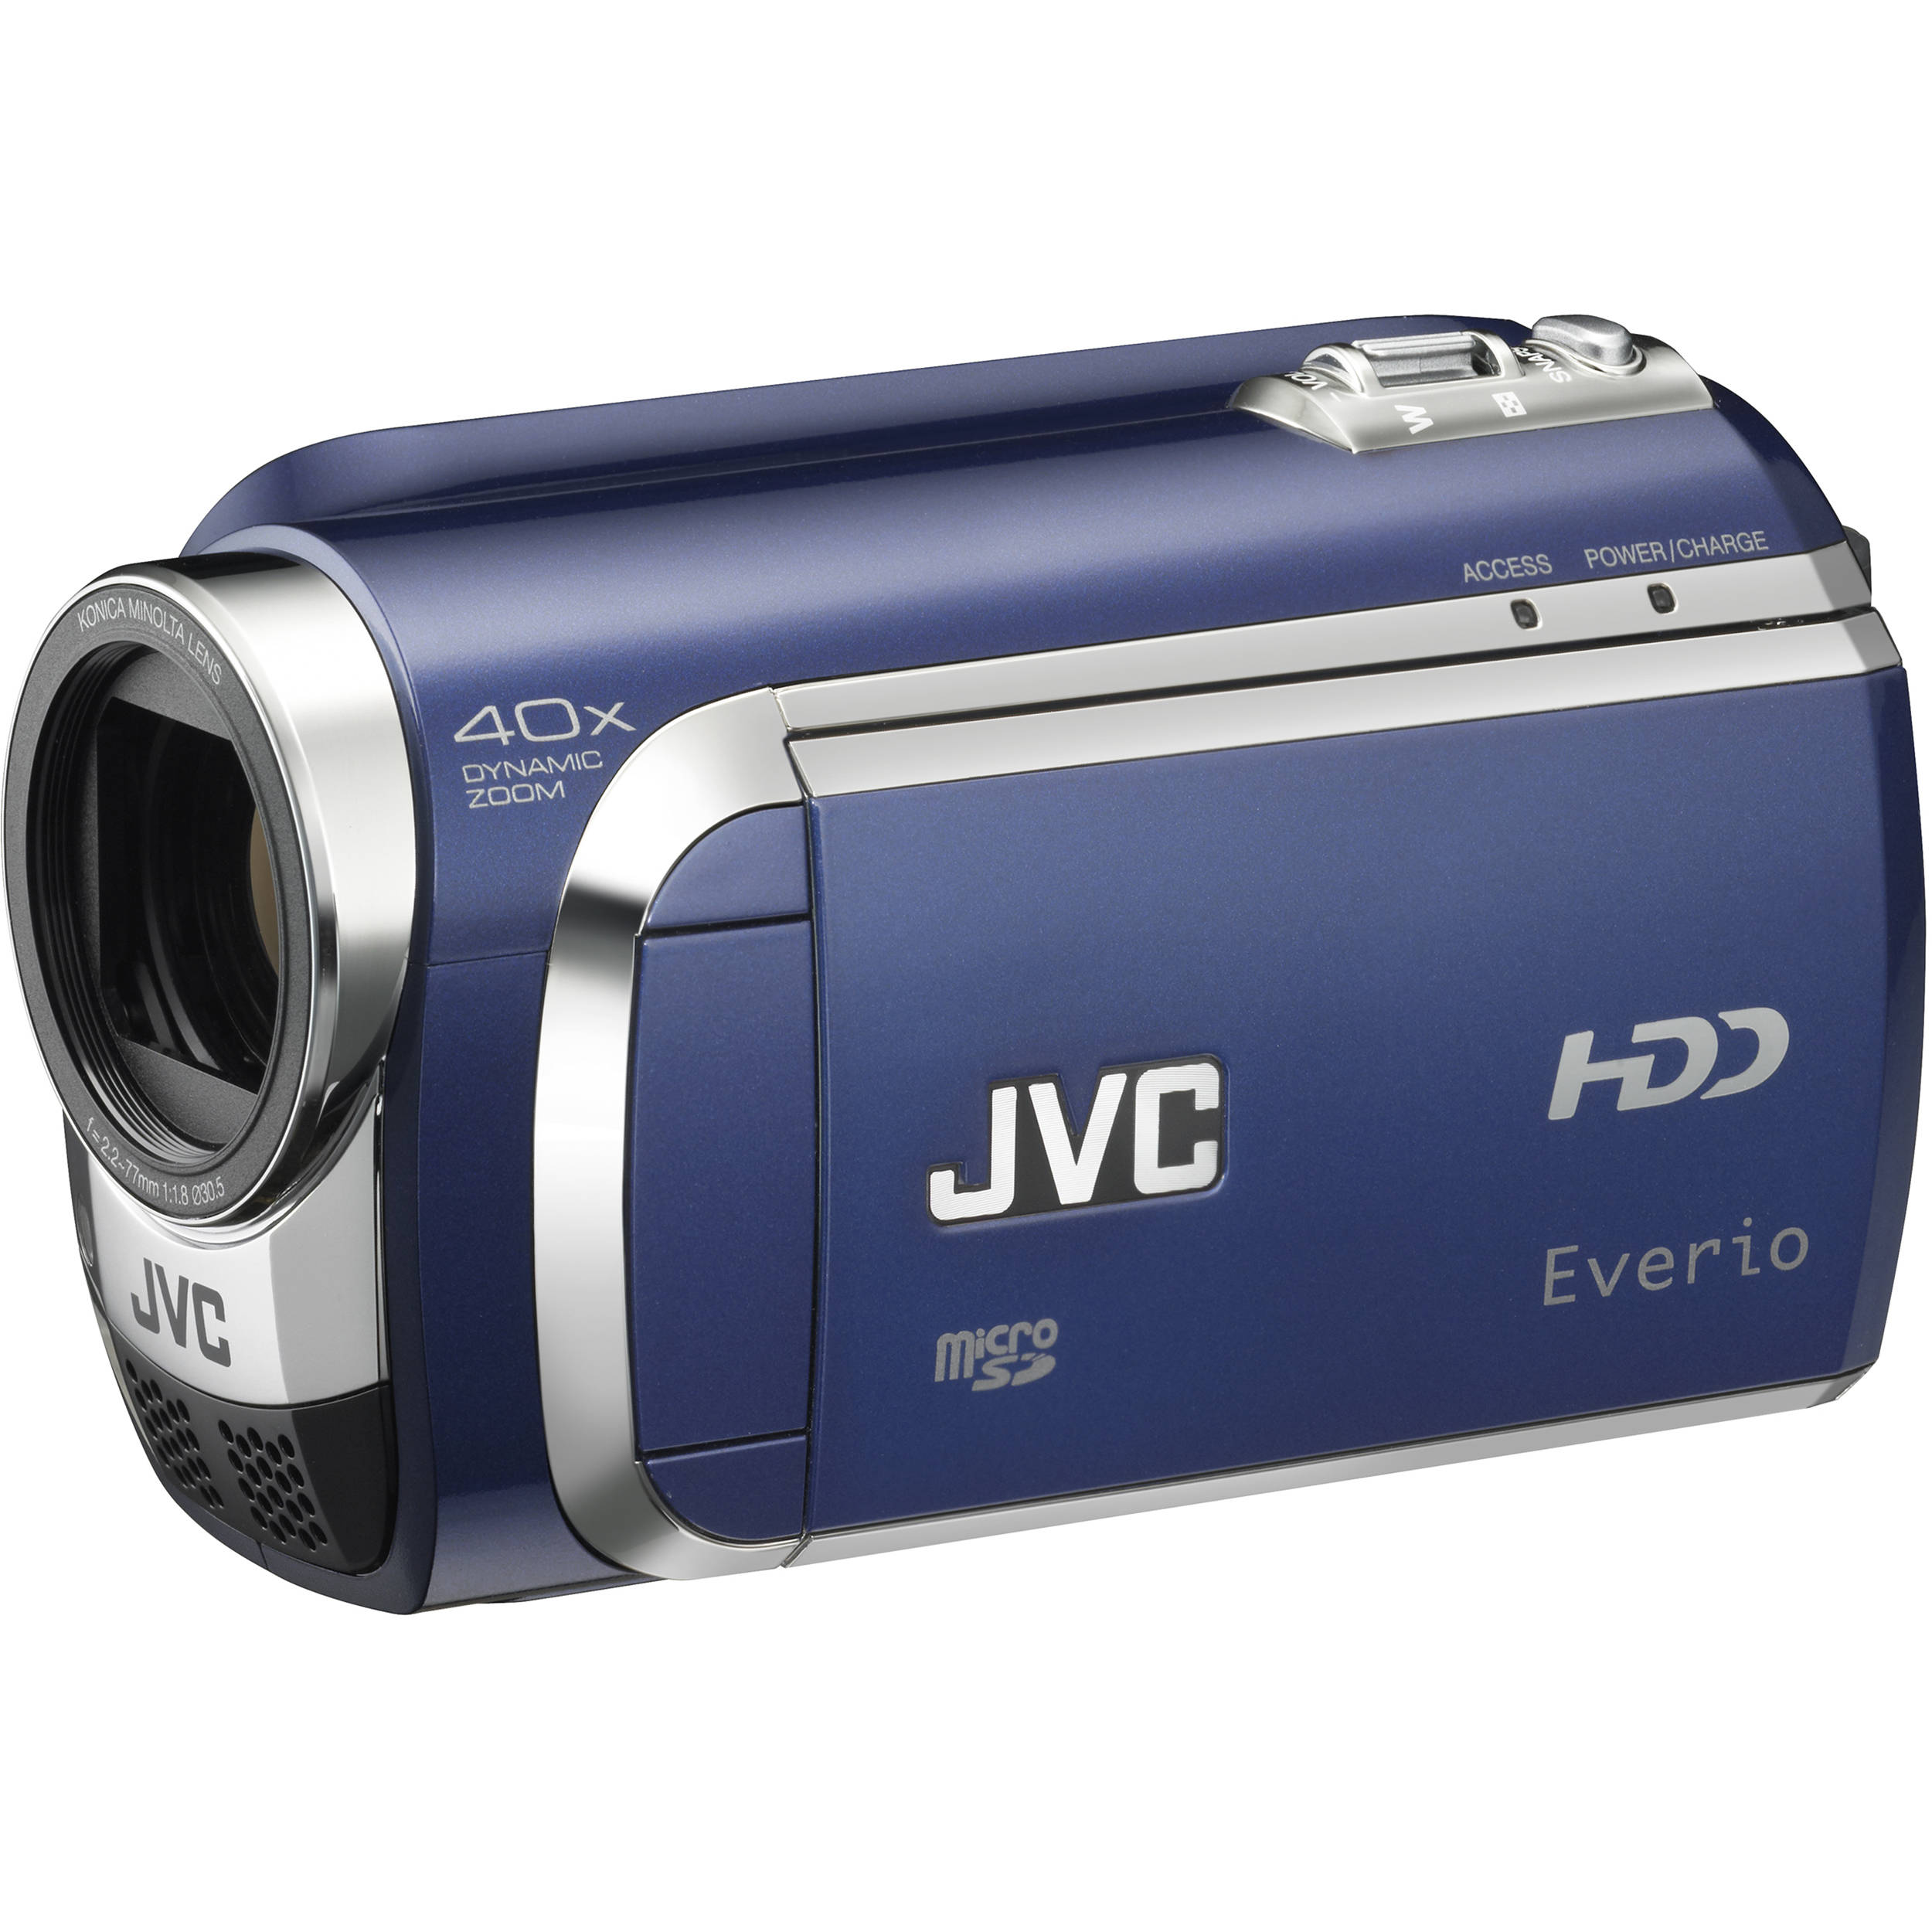 jvc gz mg630 everio 60gb hard drive pal camcorder gz mg630ae rh bhphotovideo com jvc everio 40gb hdd camcorder manual jvc everio hd manual